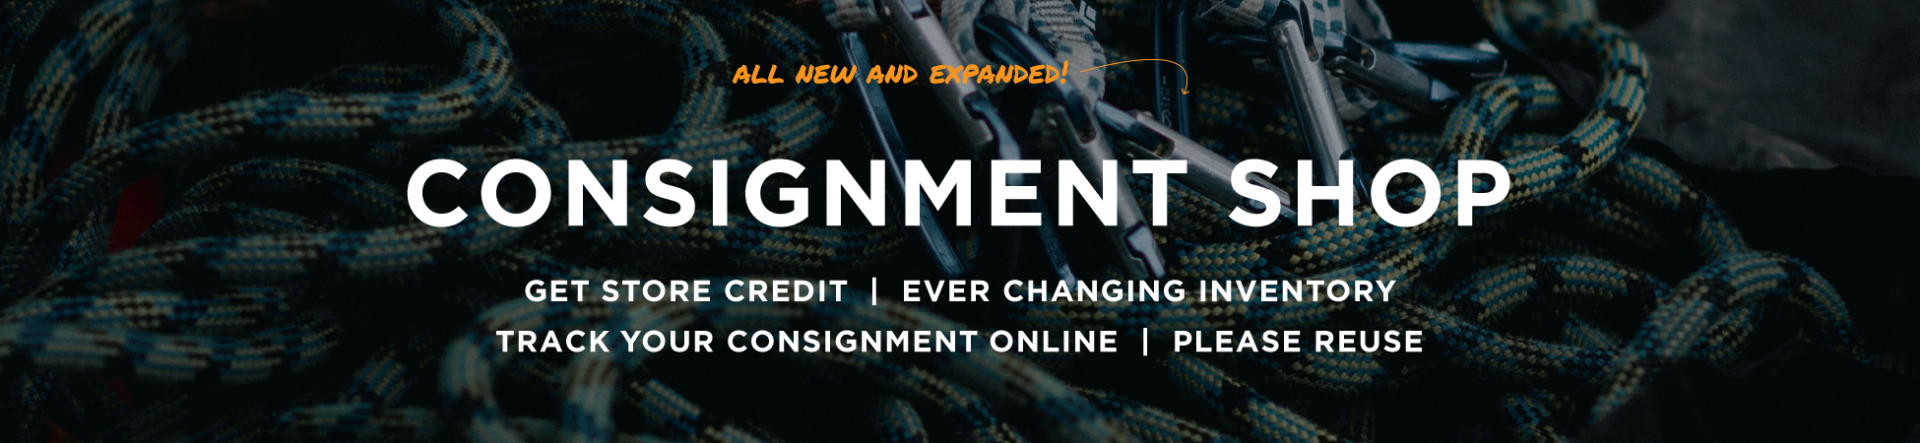 New expanded consignment shop!